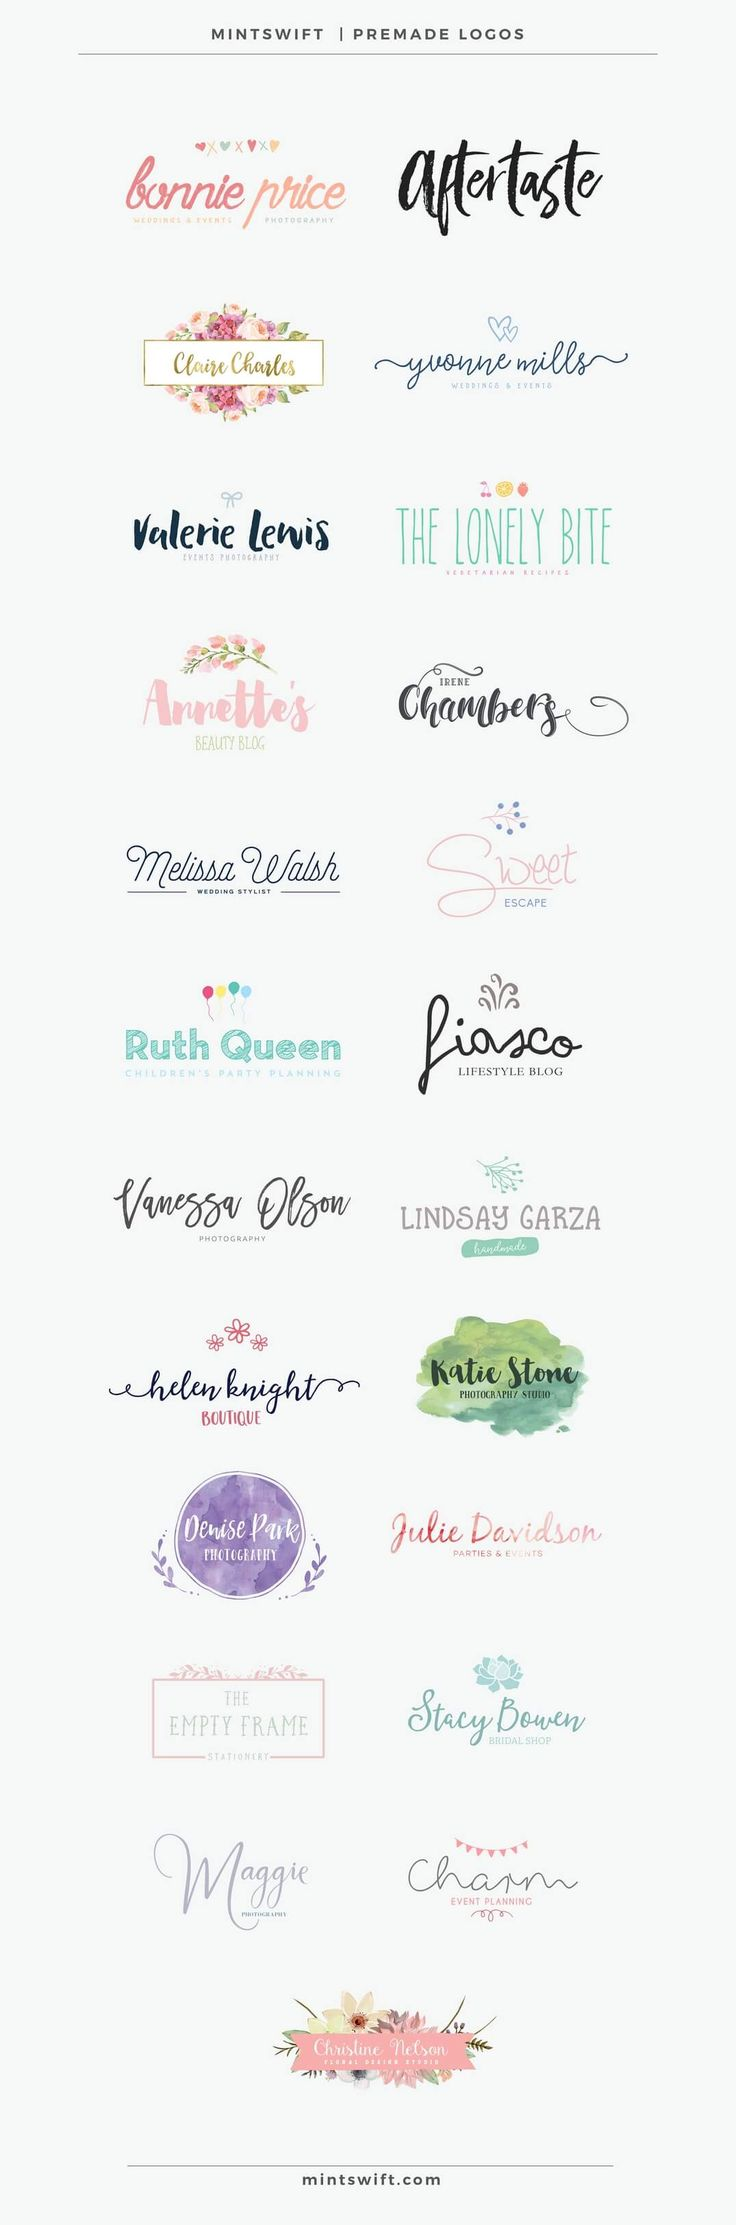 10 New Premade Logos Now In MintSwift Shop